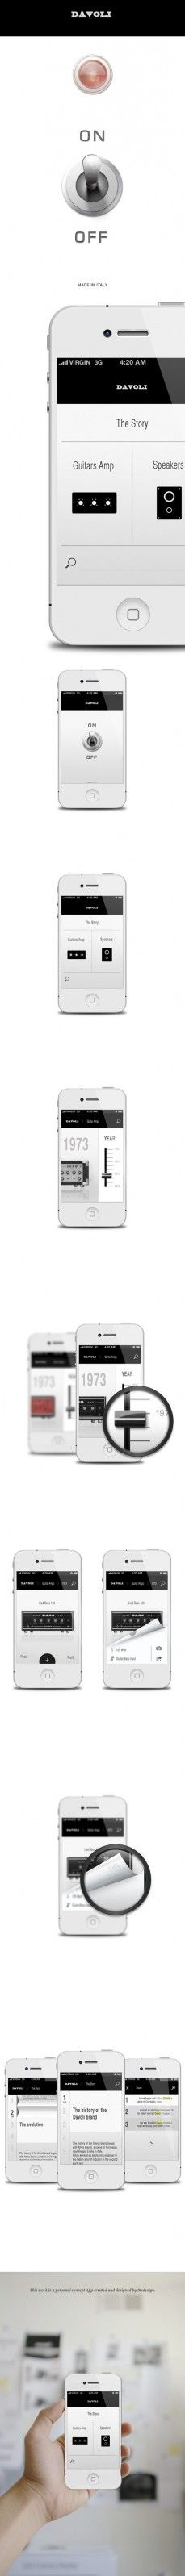 iPhone App UI. Loved the lack of colors here. Very neat and subtle interface.